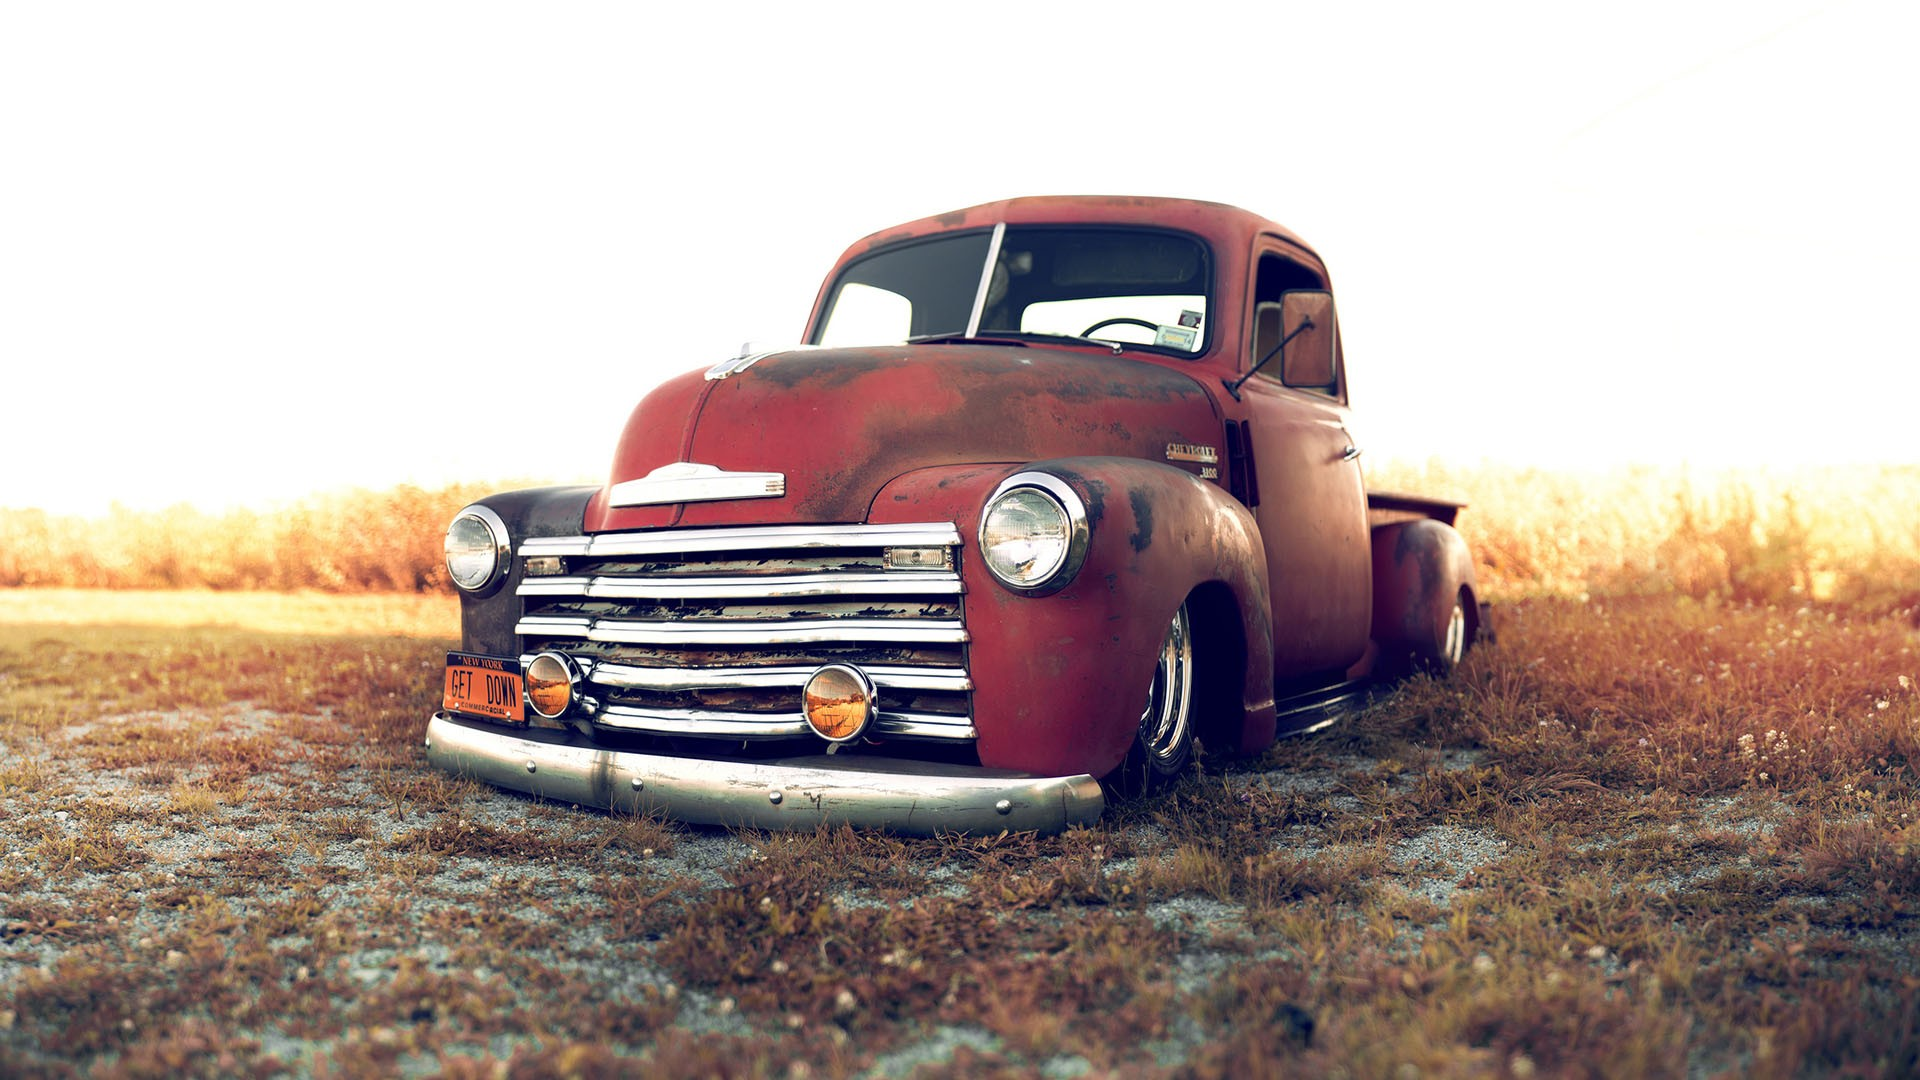 Stance Works Chevy Chevrolet Trucks Lowriders Custom Classic